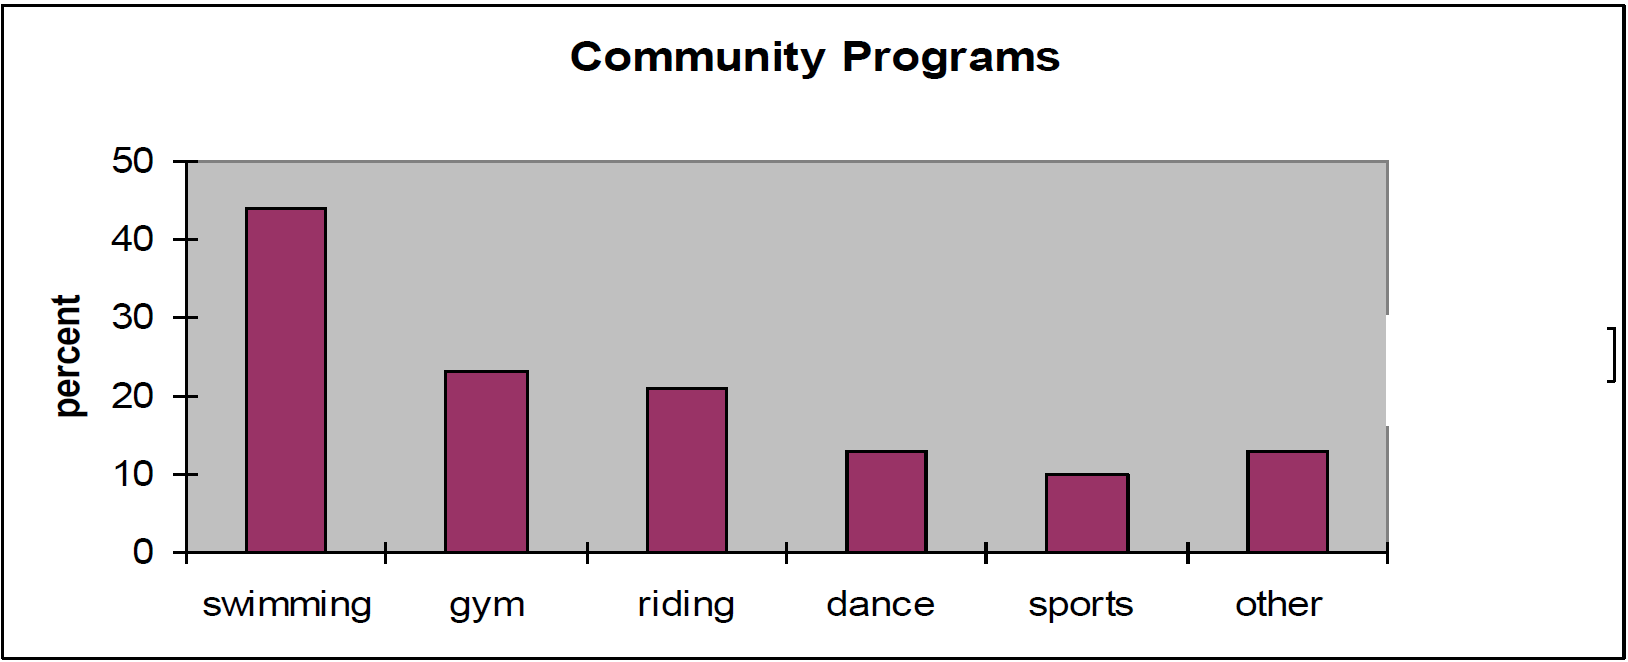 Table communityprogram